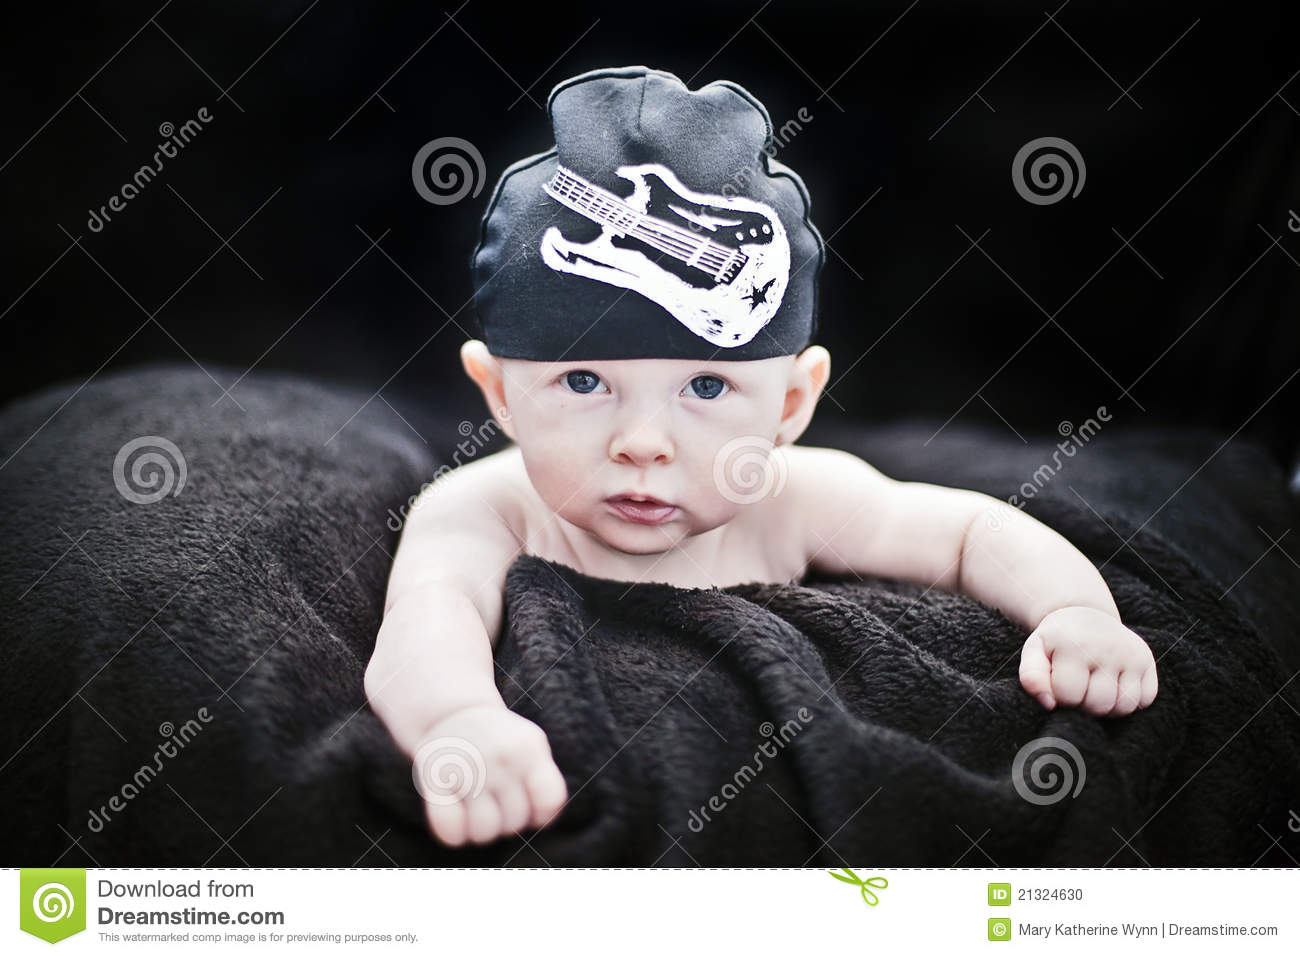 Sidney star baby pictures 25 Off